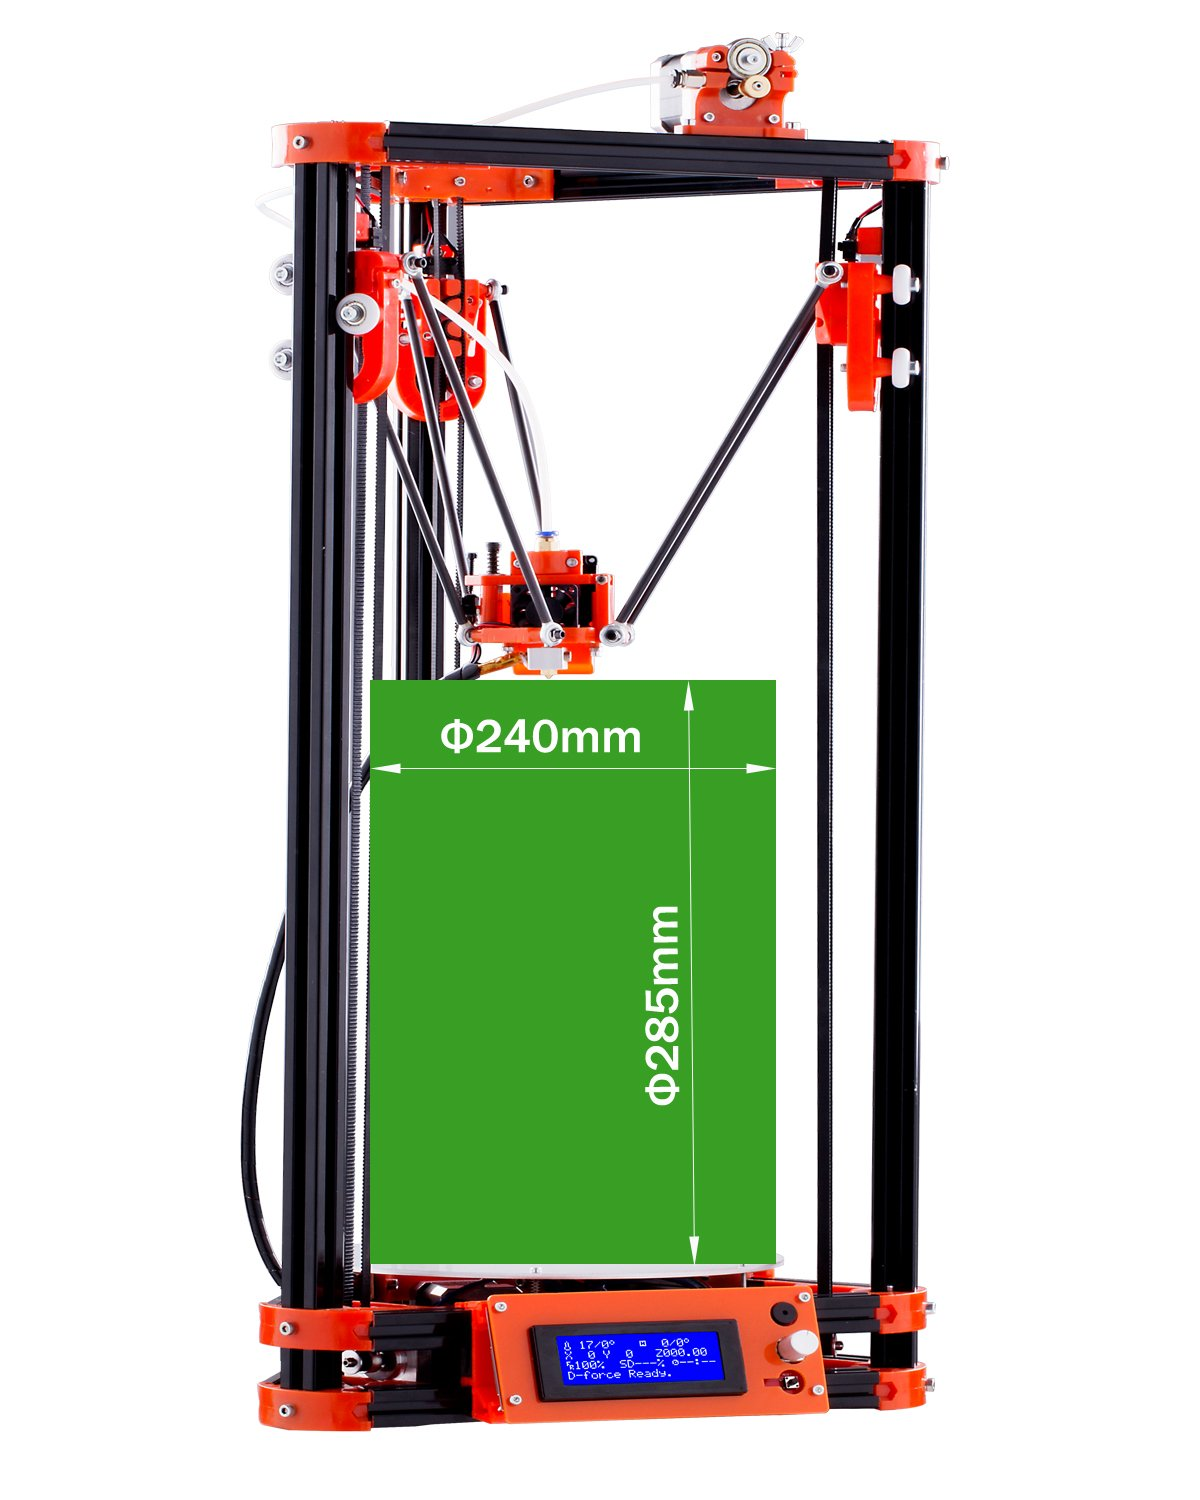 Amazon.com: FLSUN Delta 3D Printer Kossel DIY Updated Pulley ...